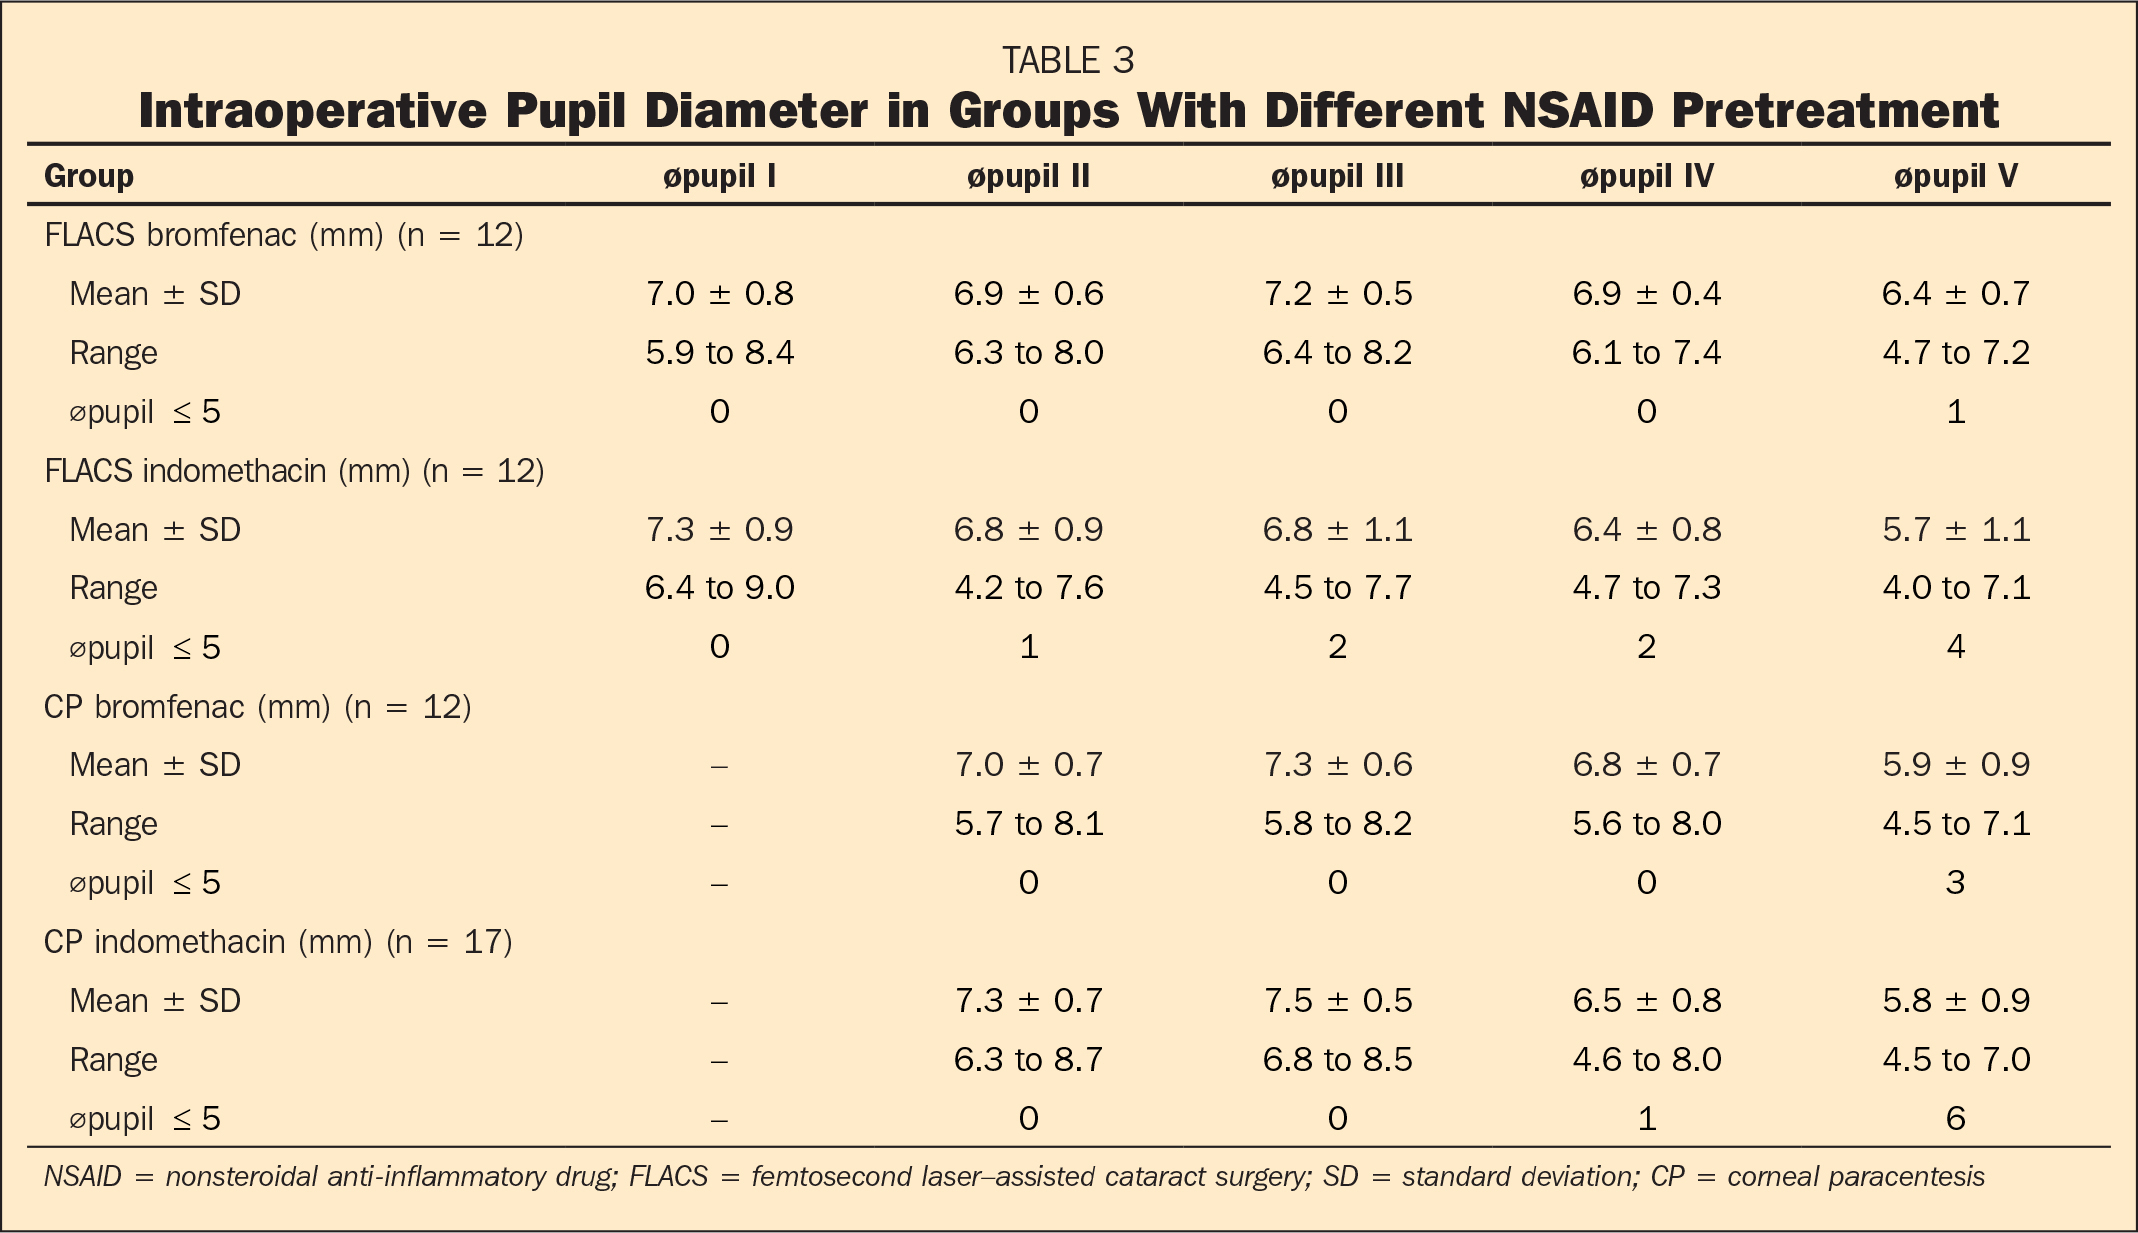 Intraoperative Pupil Diameter in Groups With Different NSAID Pretreatment